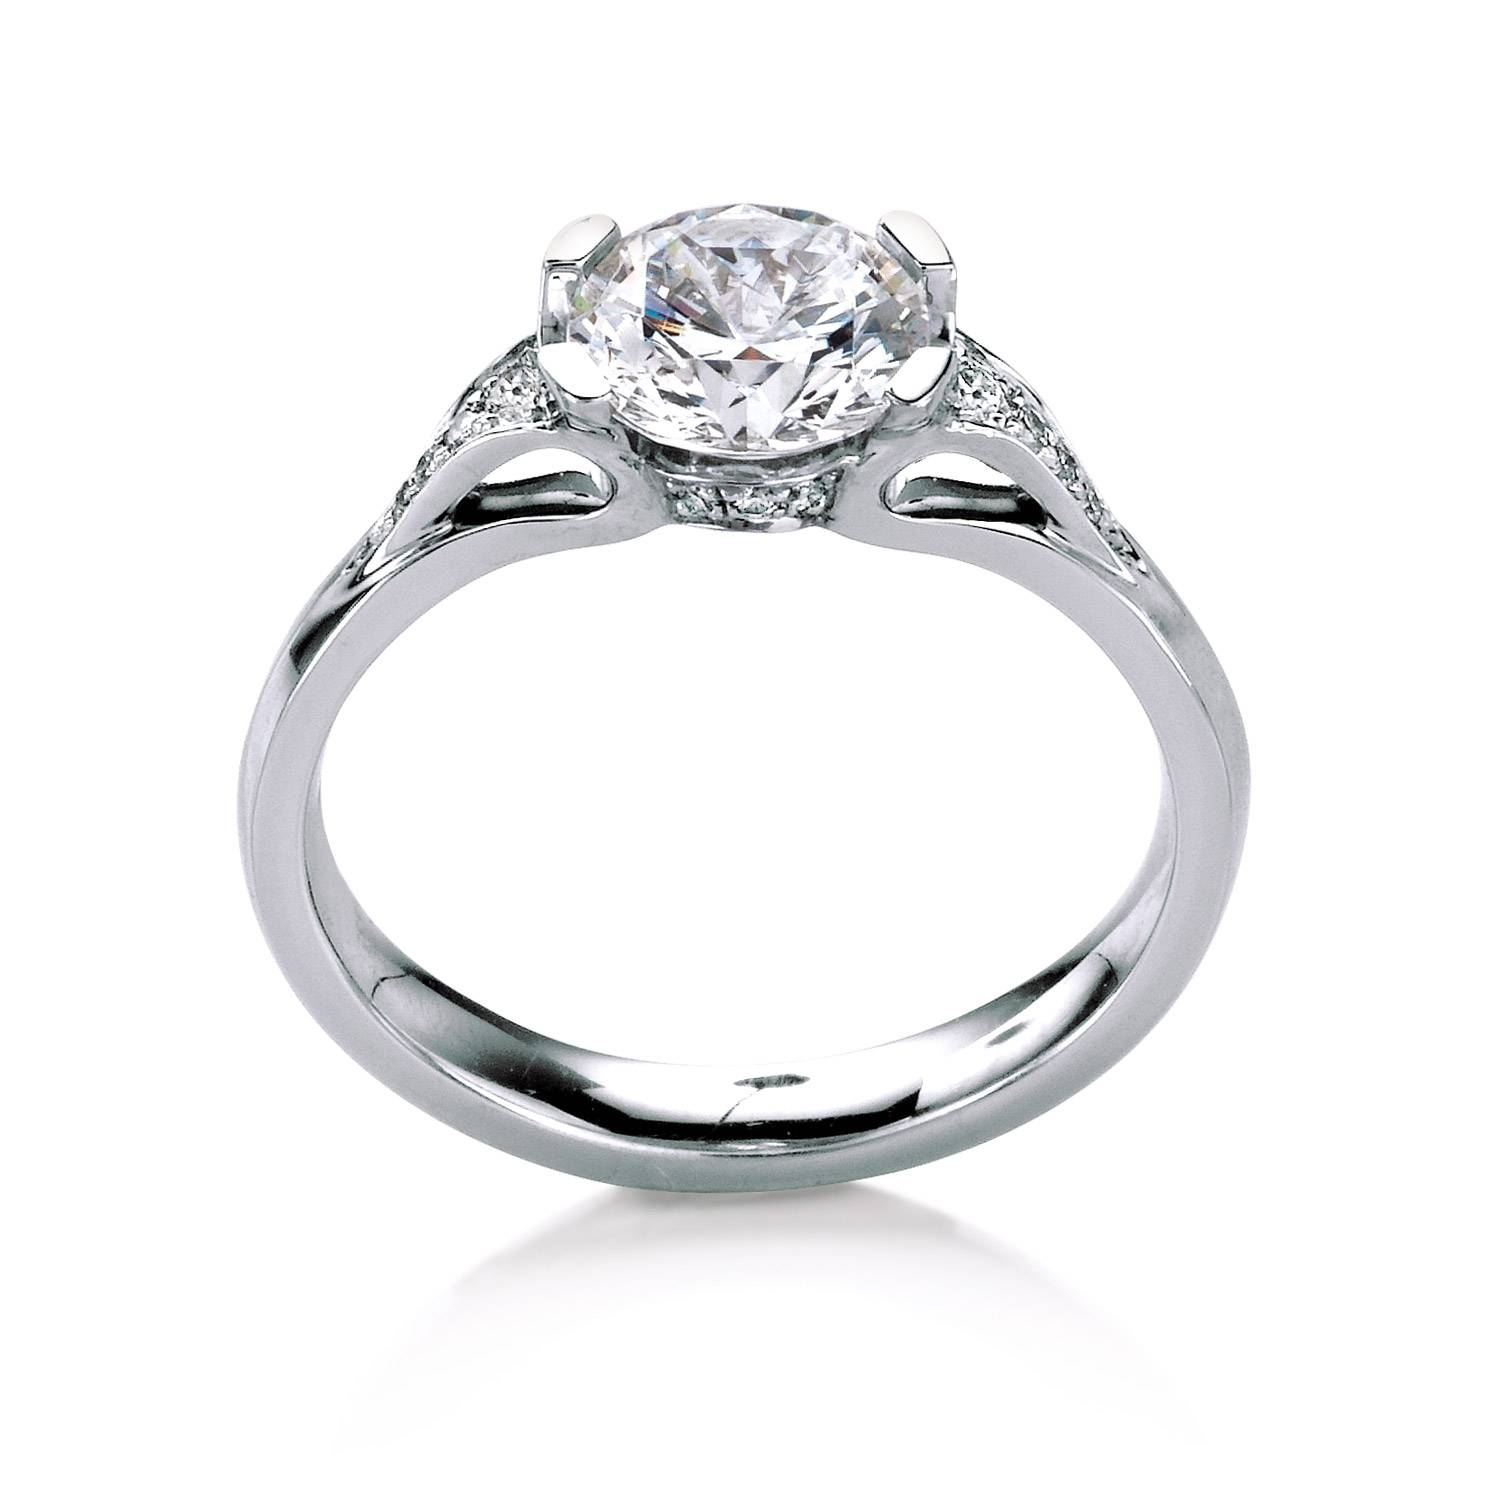 Richters Jewelry & Design Studio | Londonderry, New Hampshire | Intended For Scottish Engagement Rings (View 3 of 15)